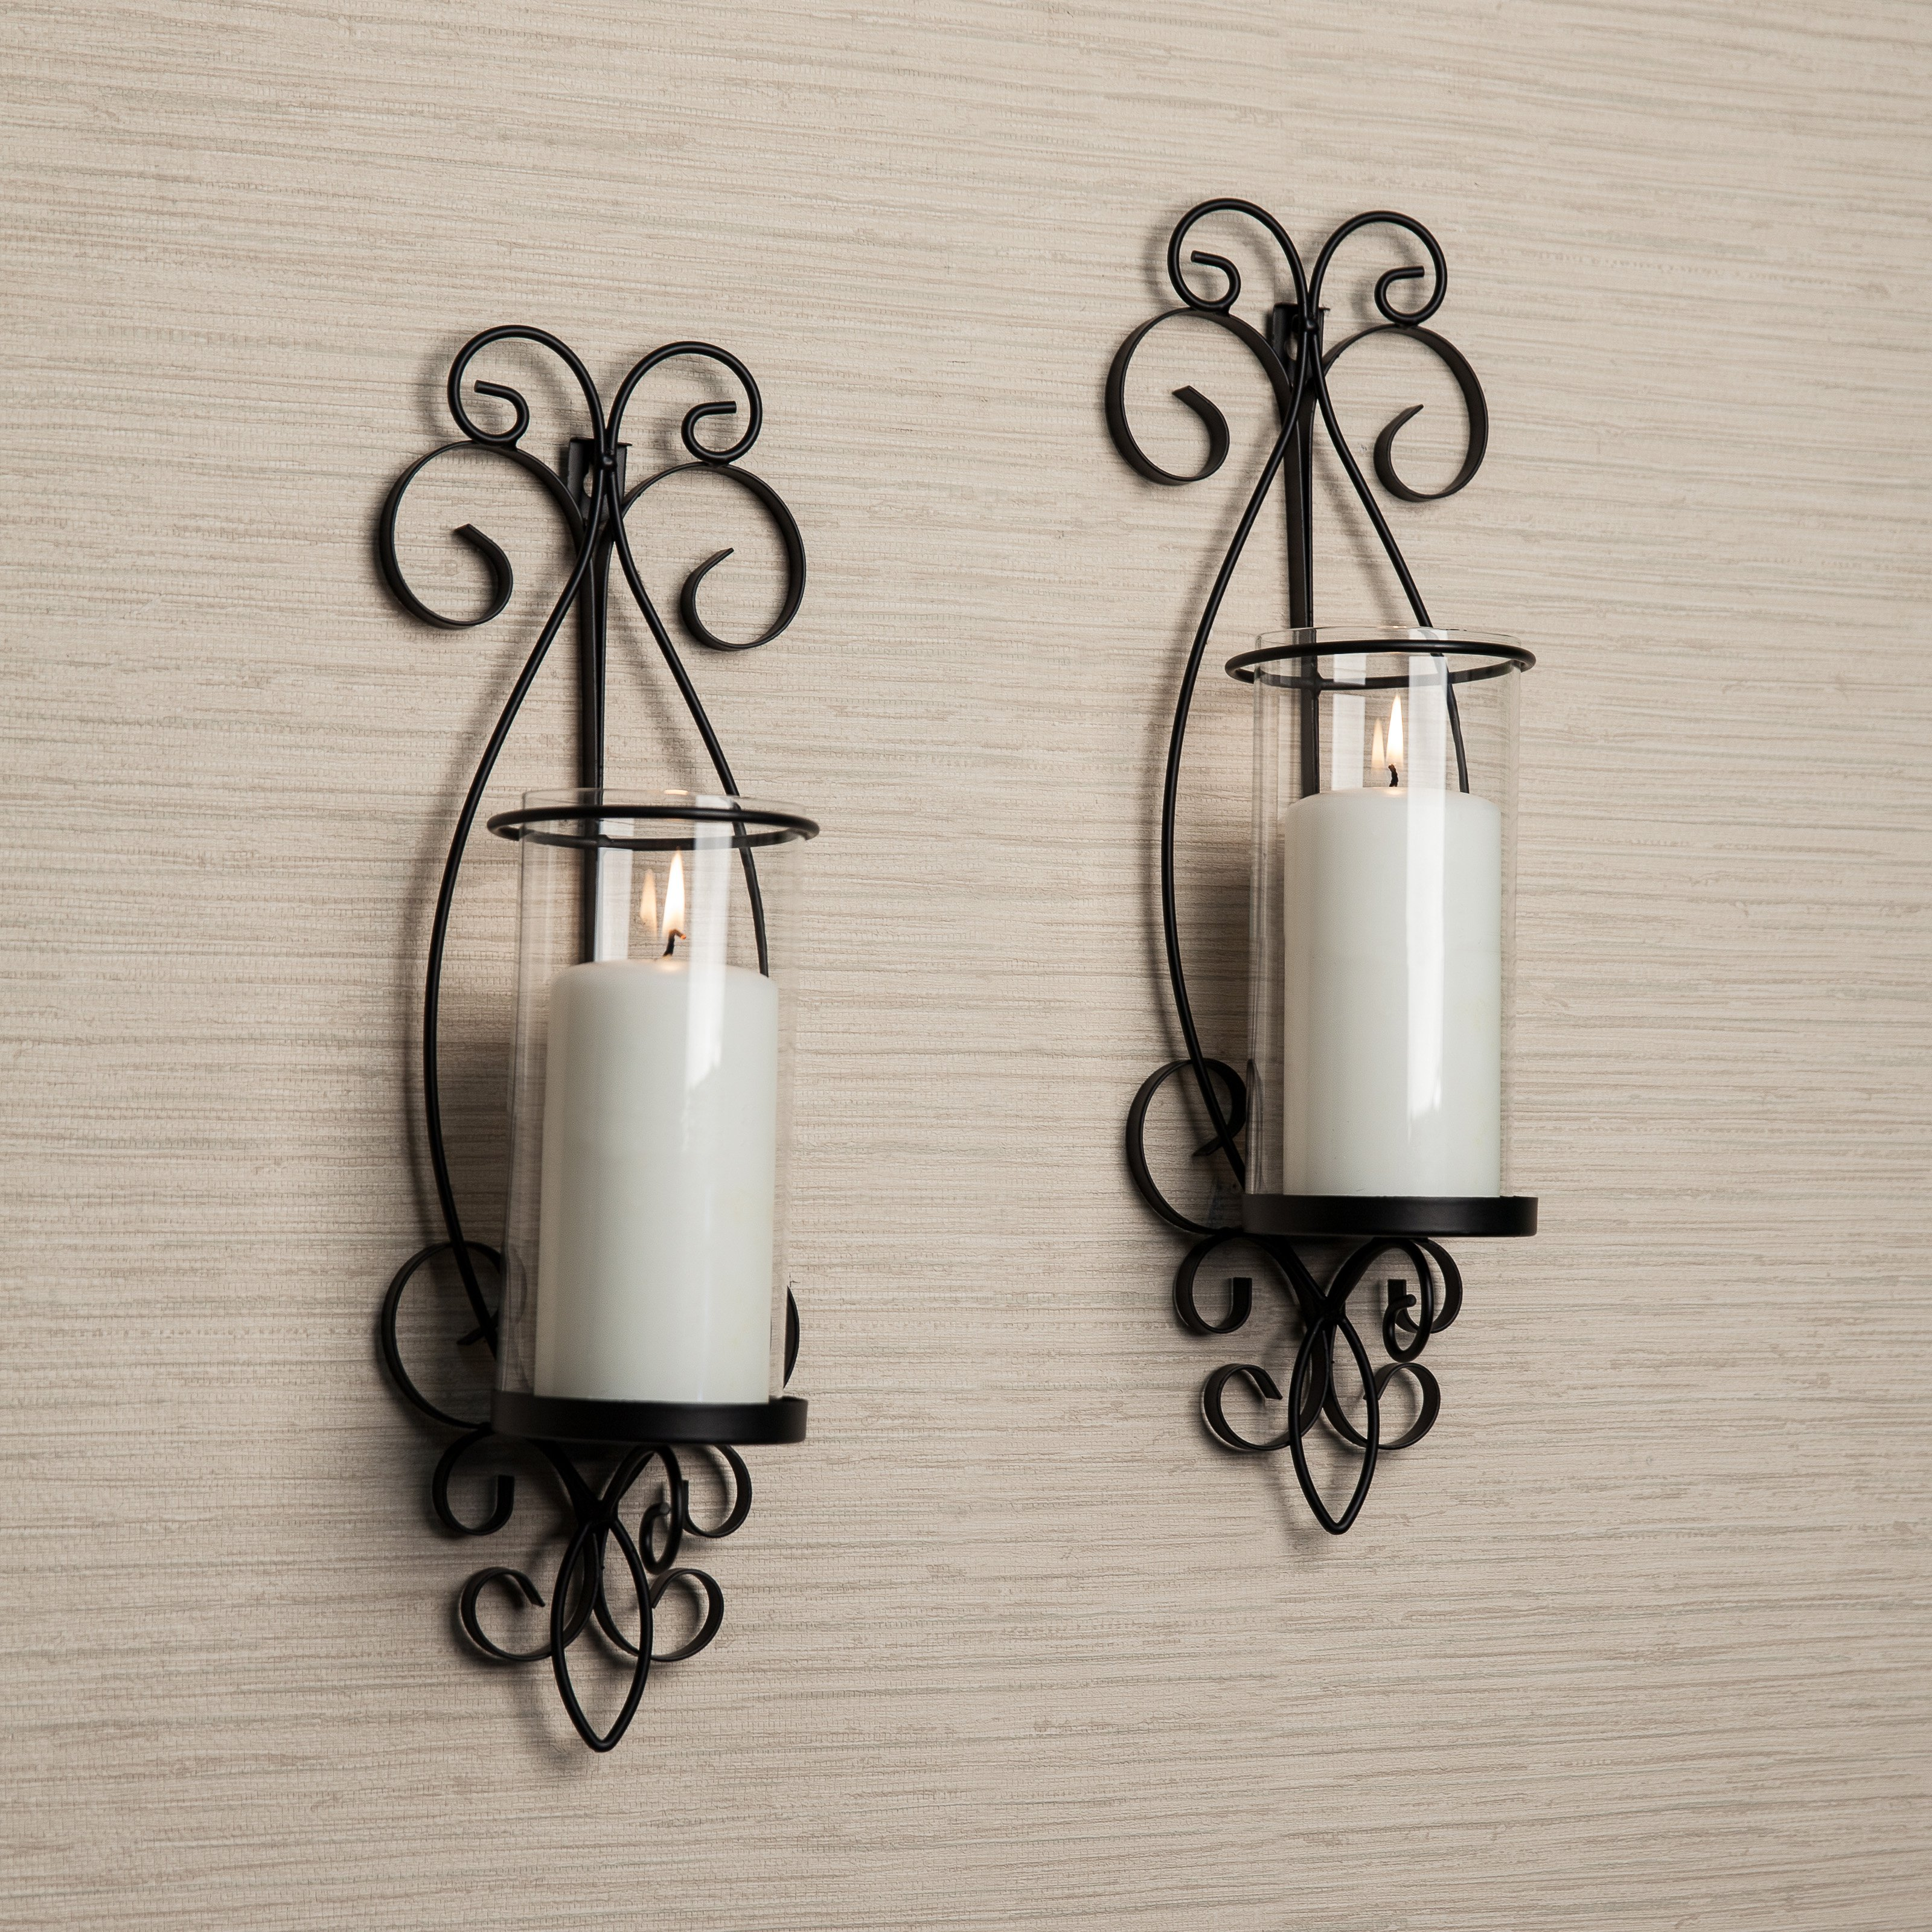 Danya B San Remo Wall Sconce Set